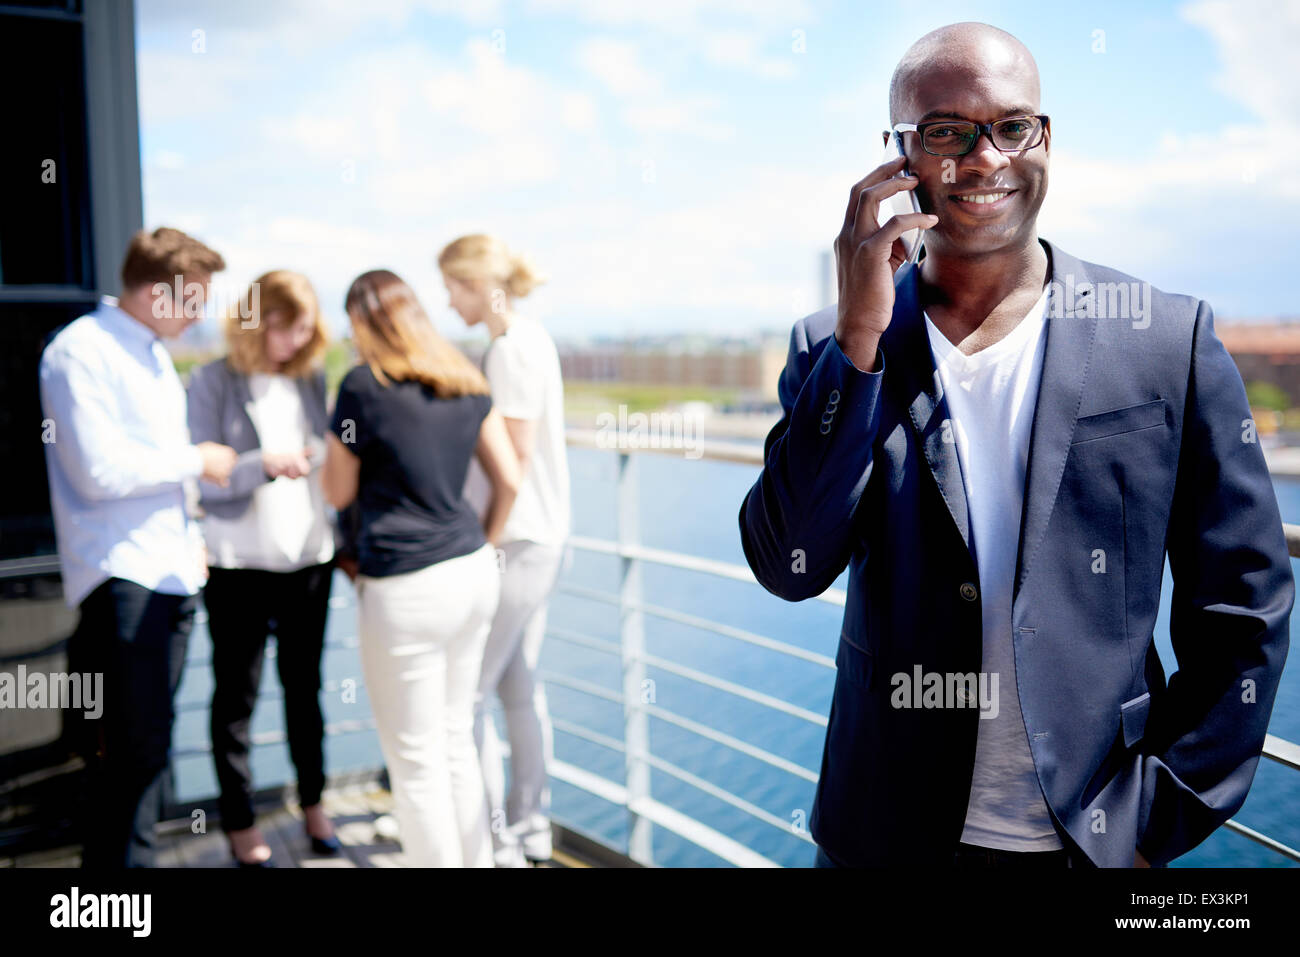 Black male executive smiling holding cellphone to ear and standing with hand in pocket - Stock Image